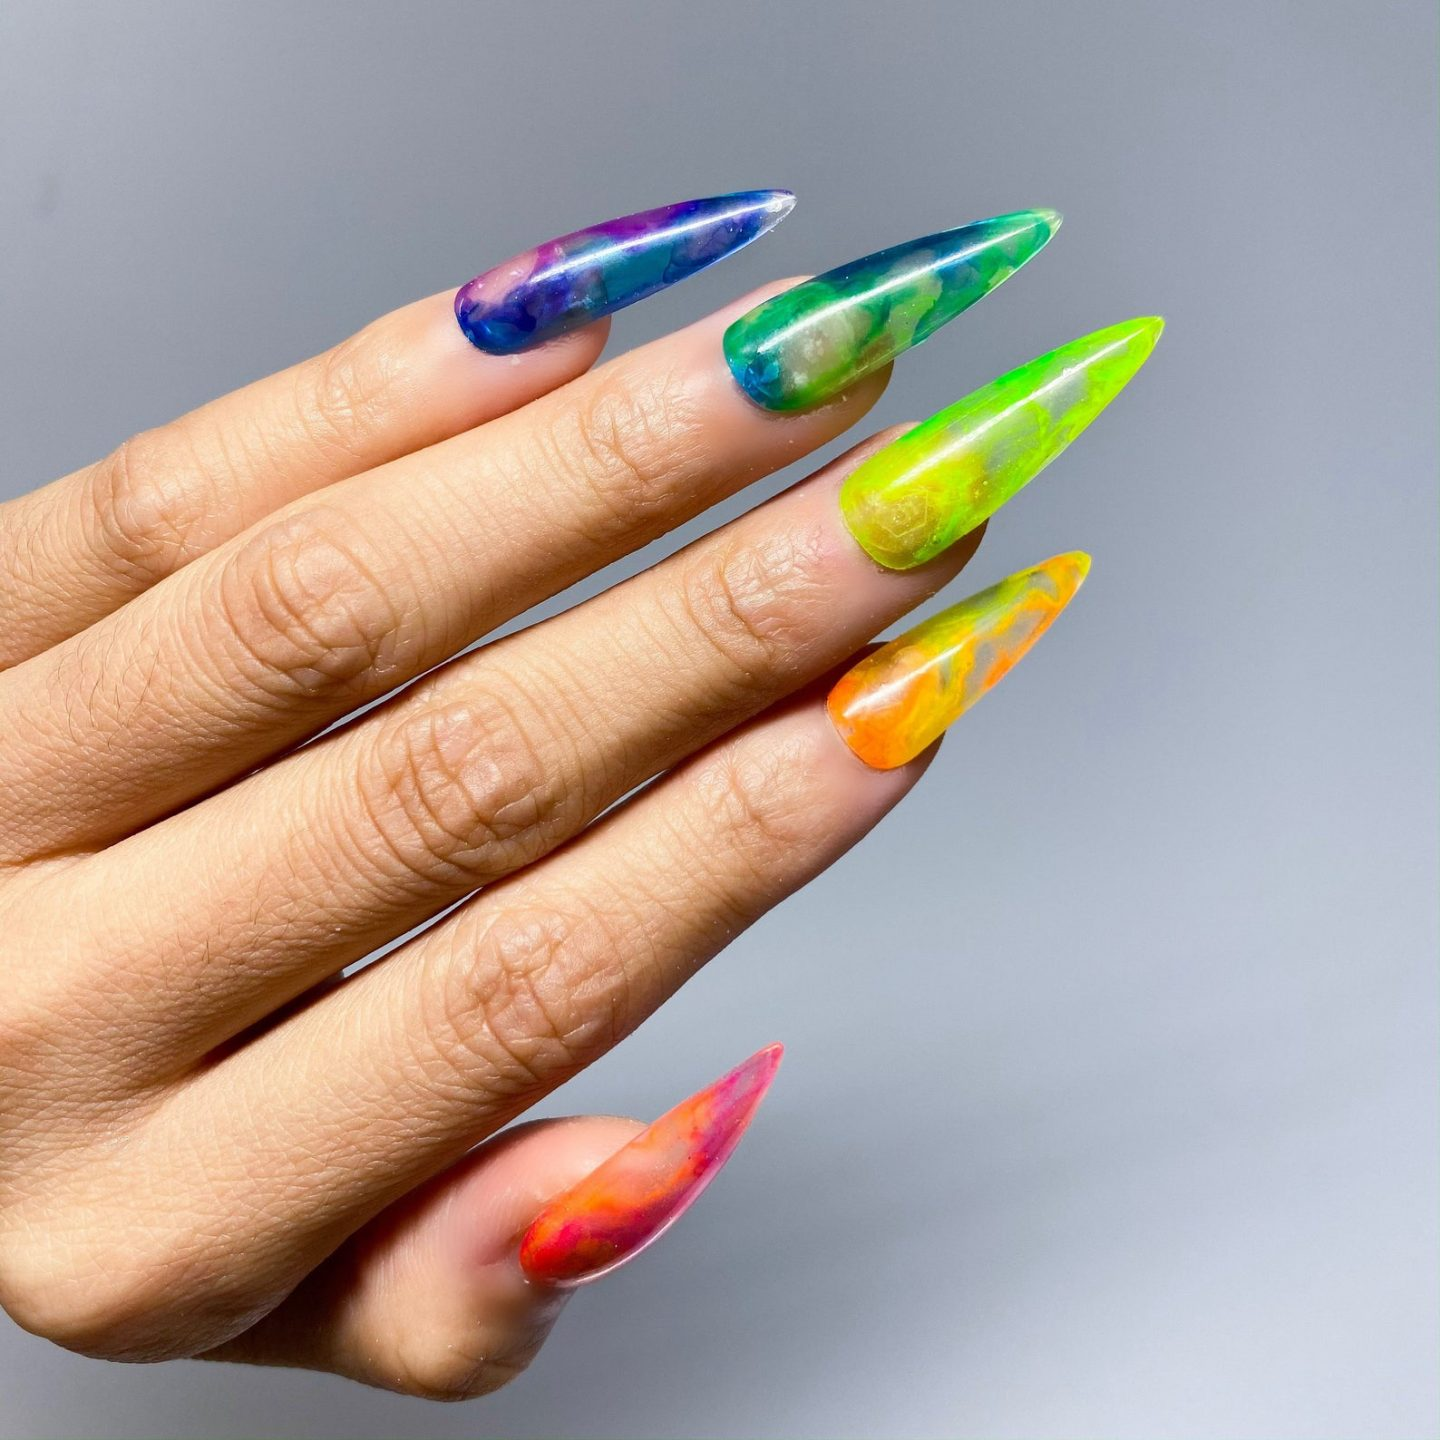 Rainbow nails in jelly effect and stiletto shape